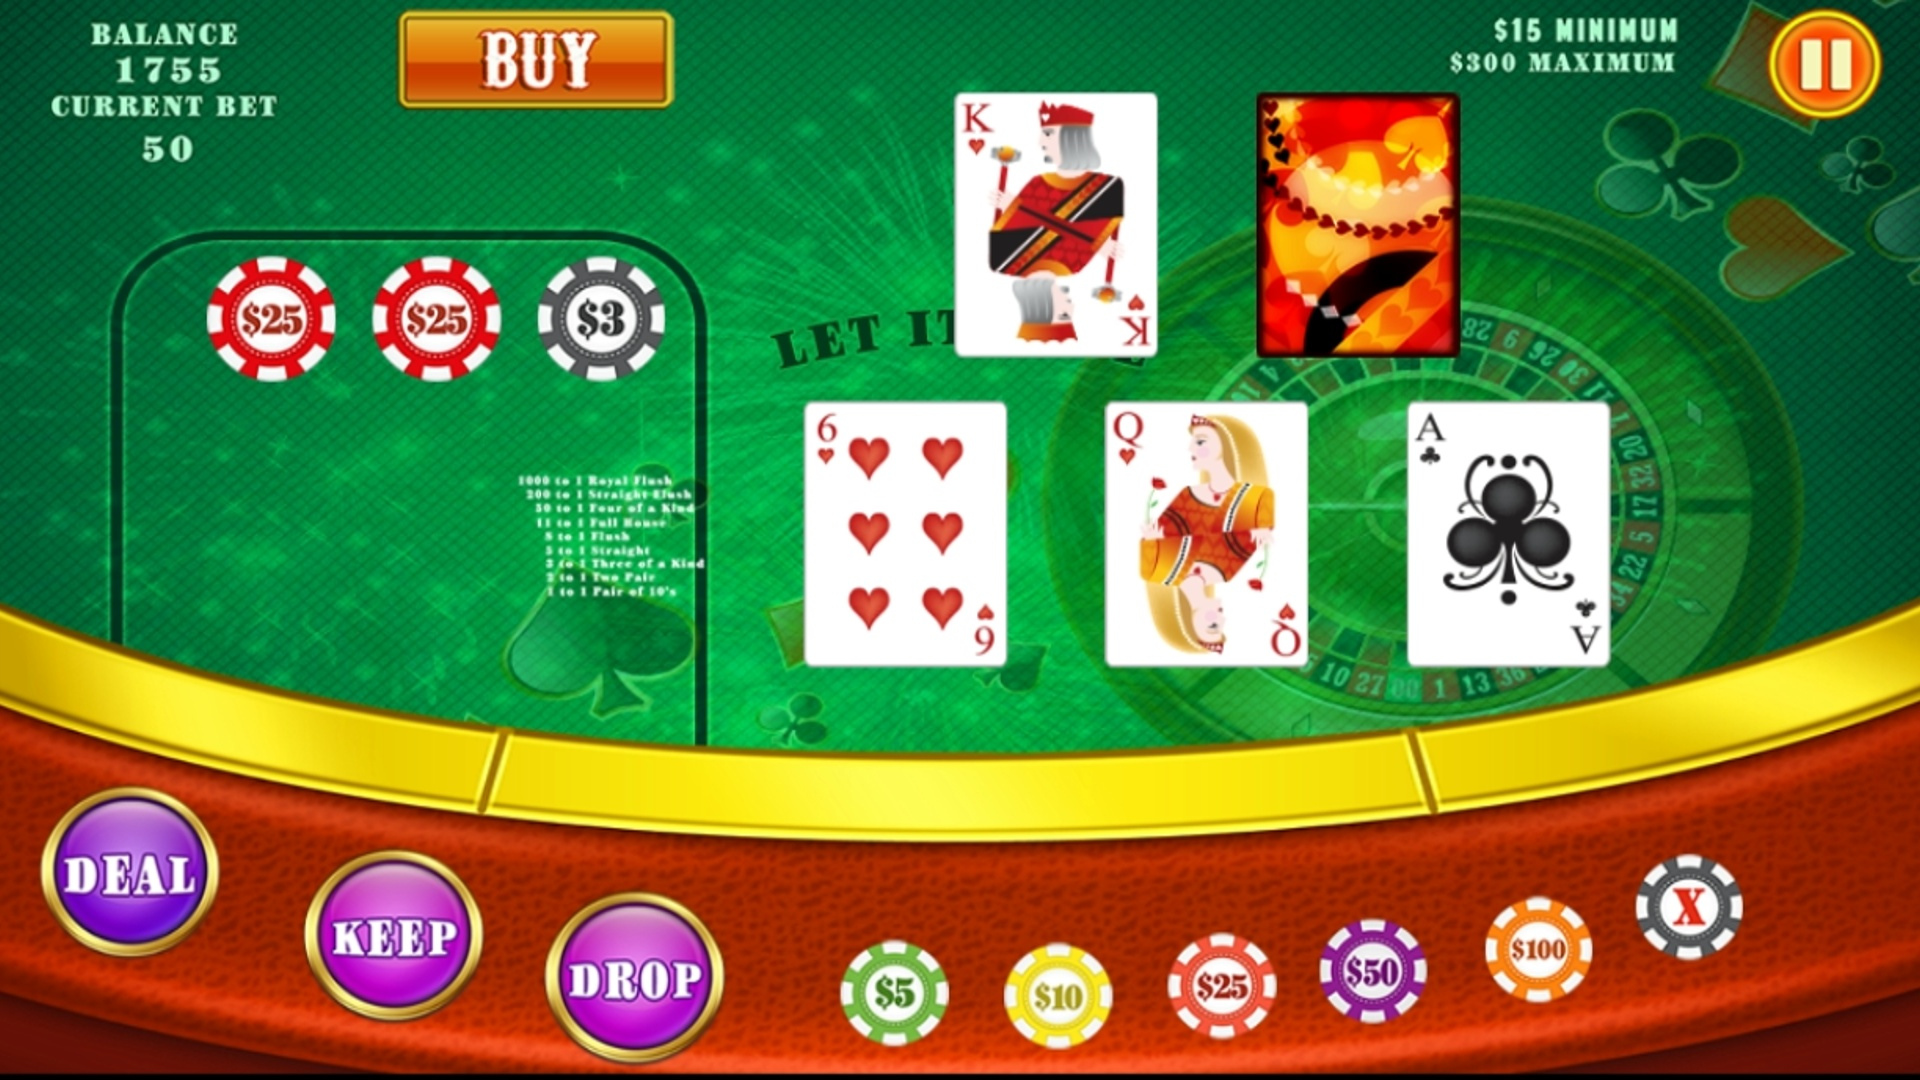 Let it Ride Poker - Free Video Poker Game - Play Now